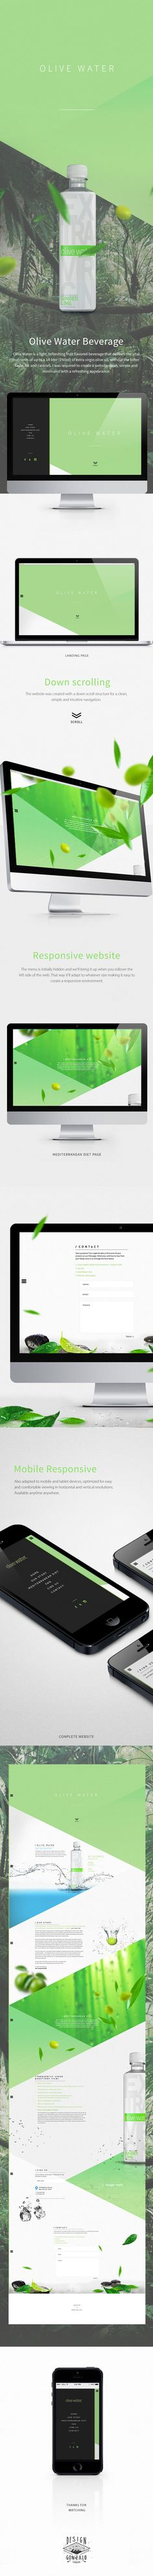 Olive Water website on Behance